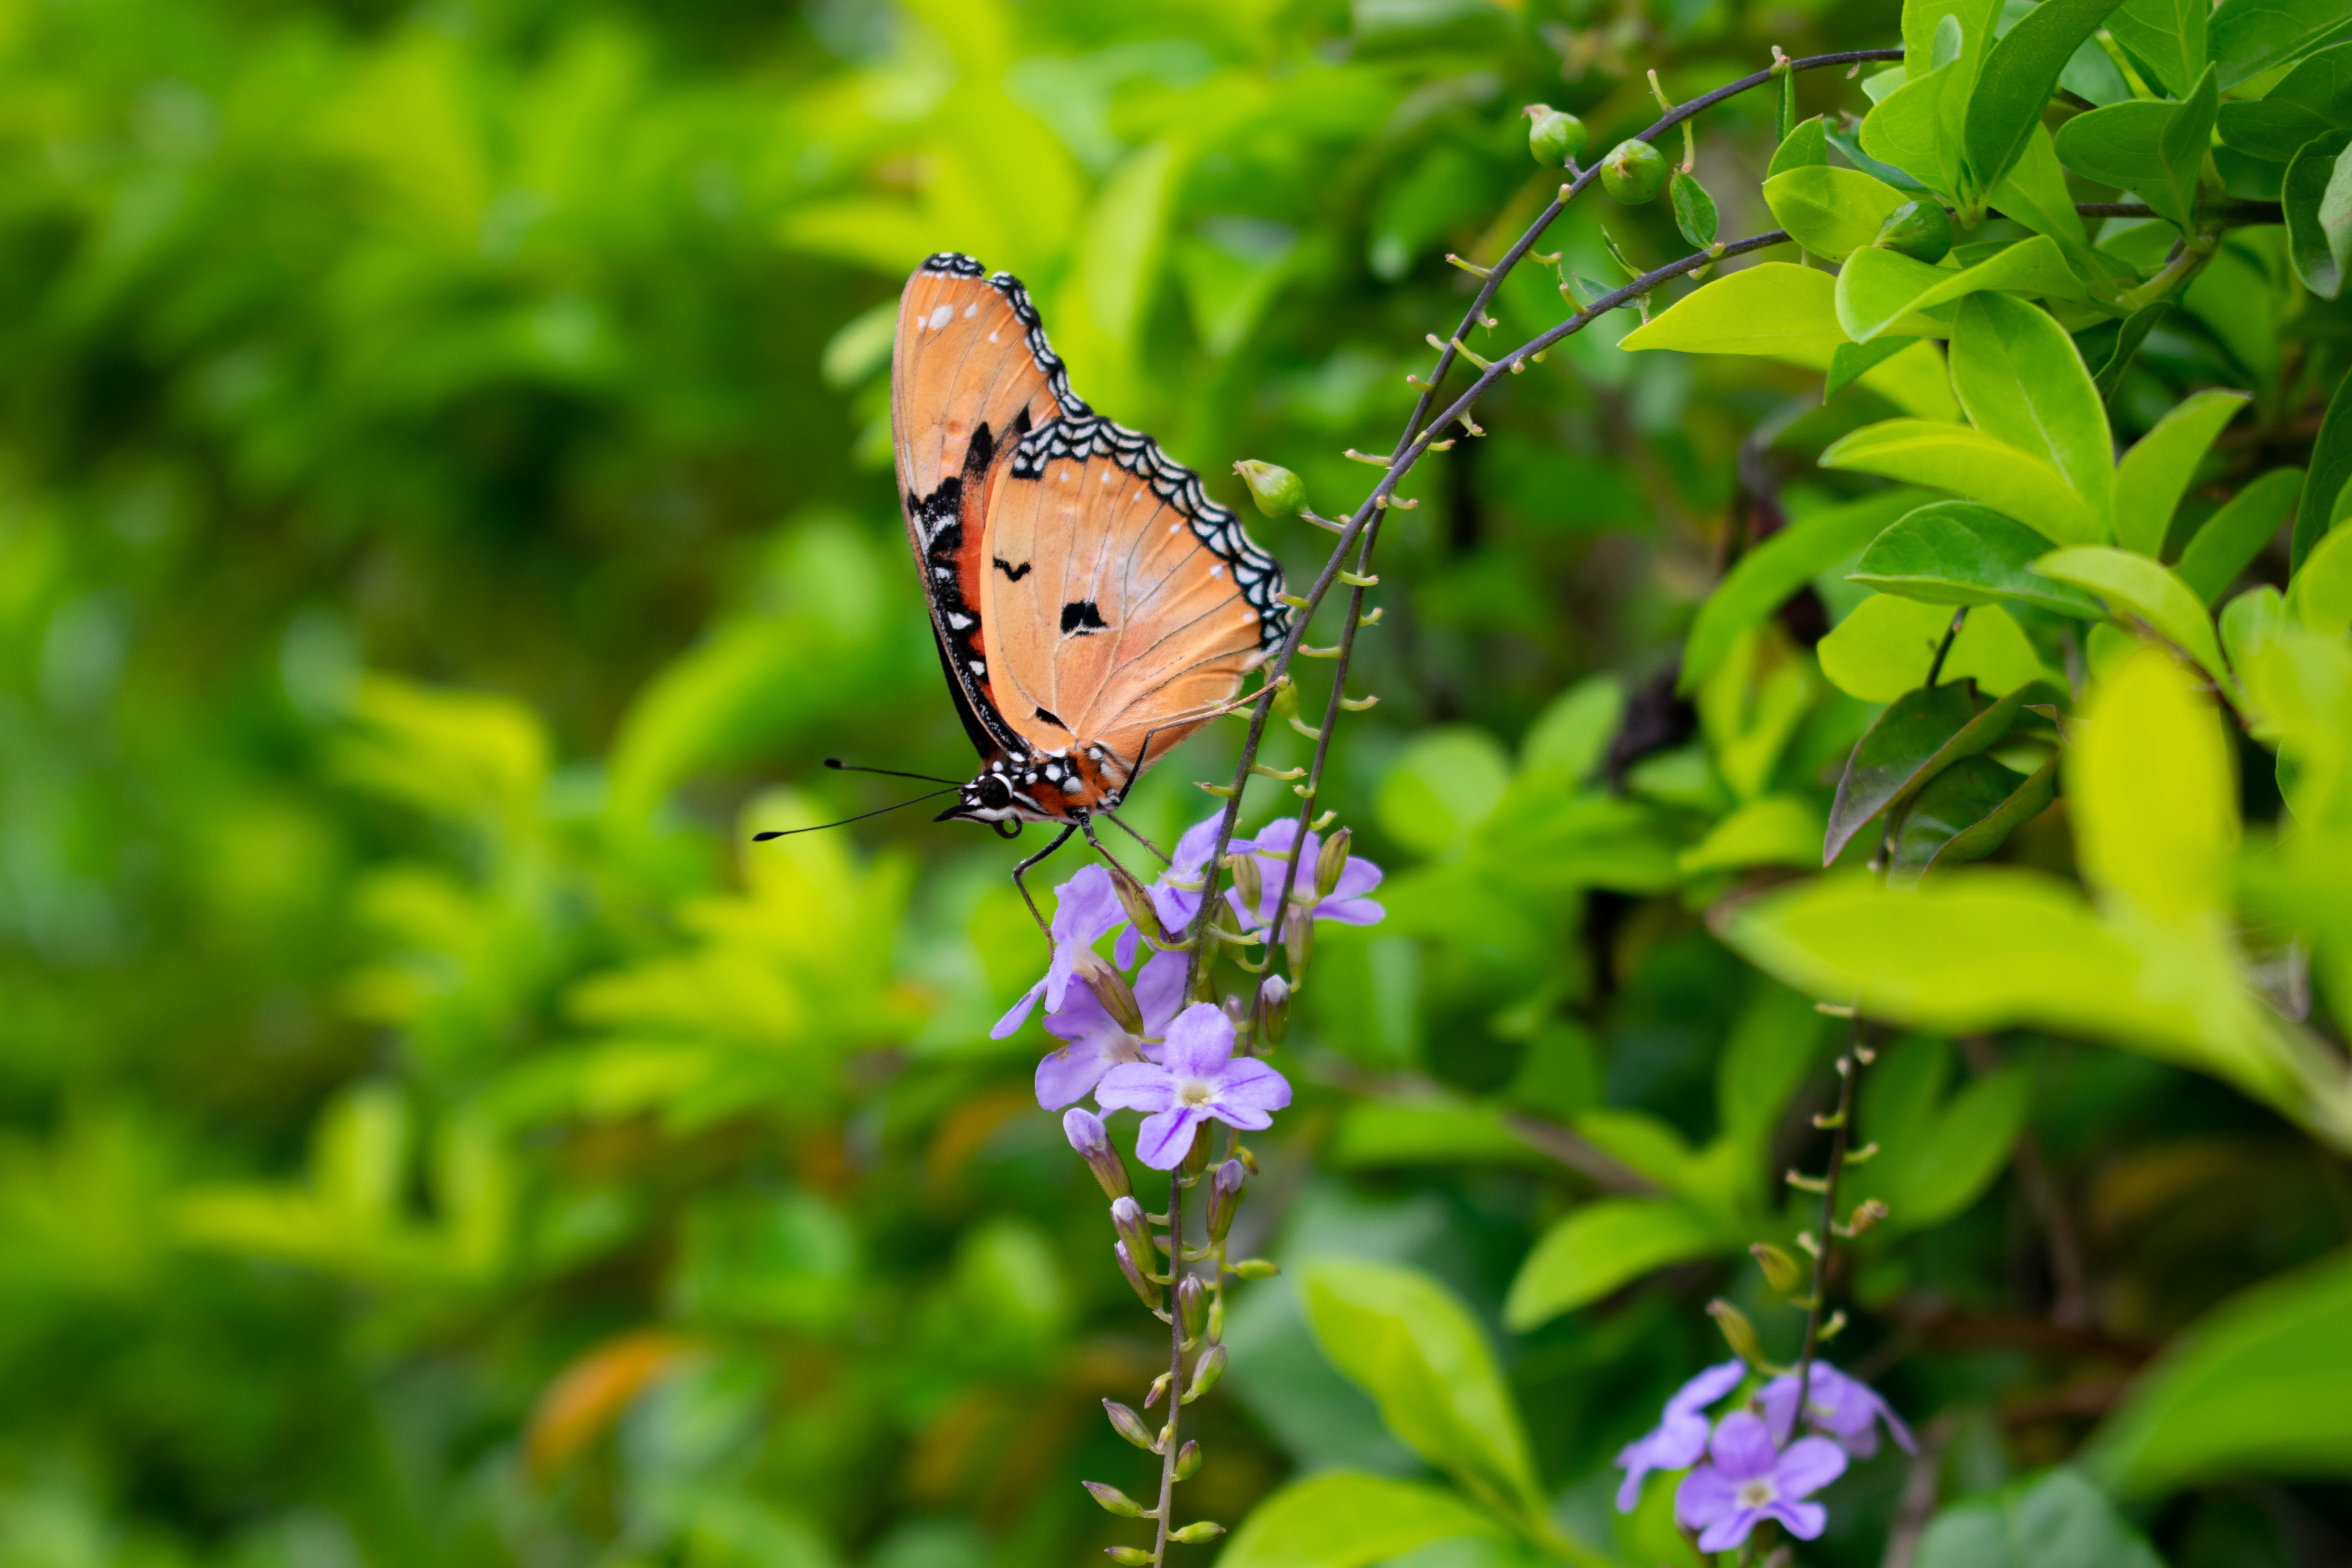 Sample Images for Summertime and Butterflies - Photography Challenge